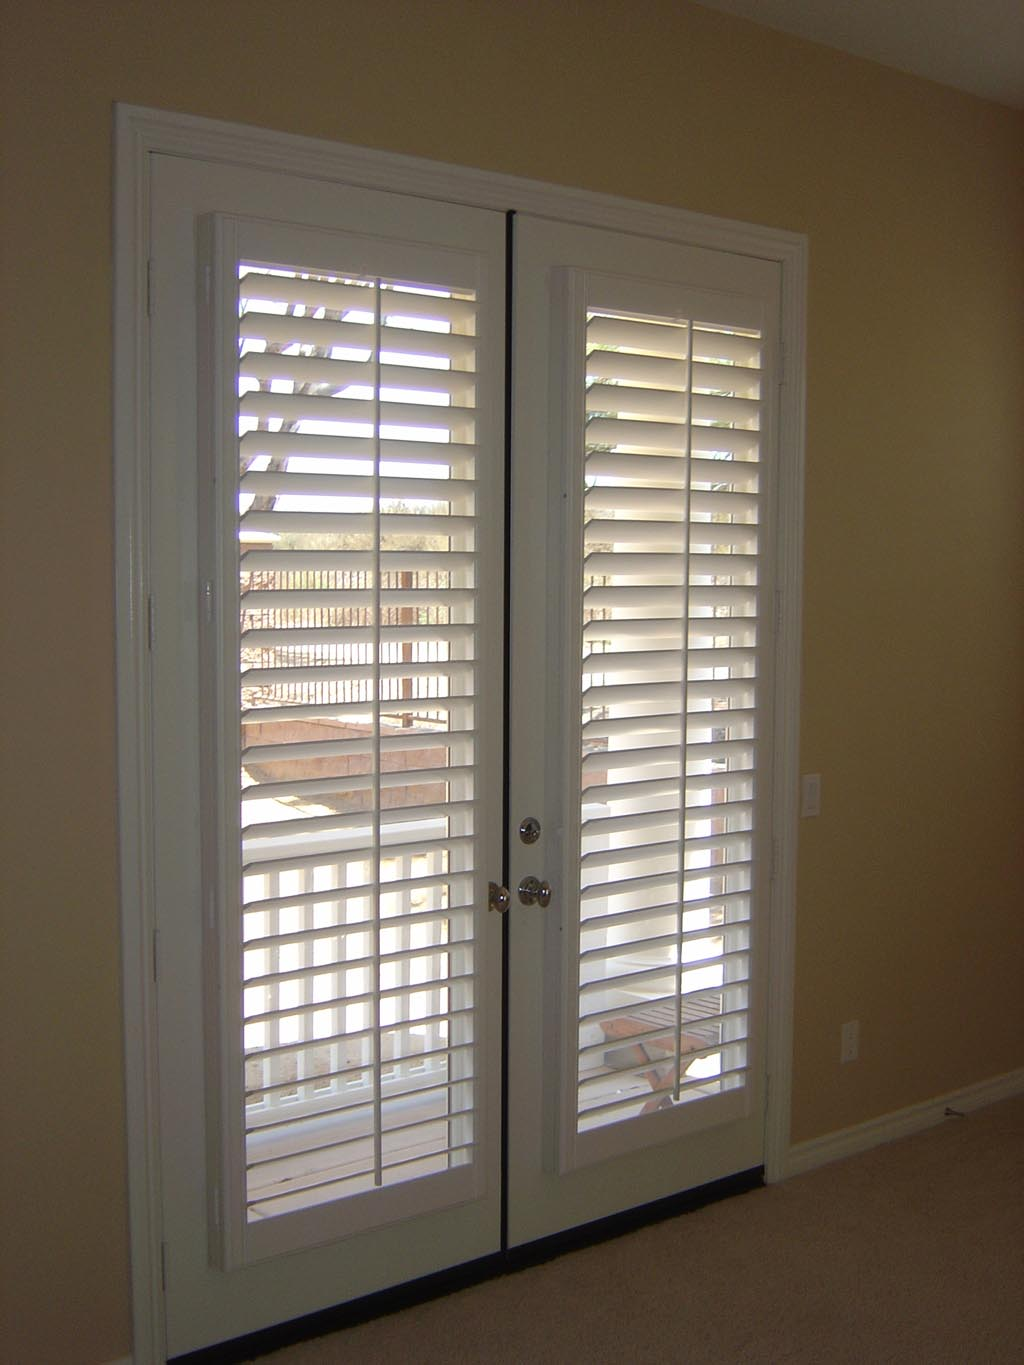 Door window blinds functionality window treatments for What room has no doors or windows